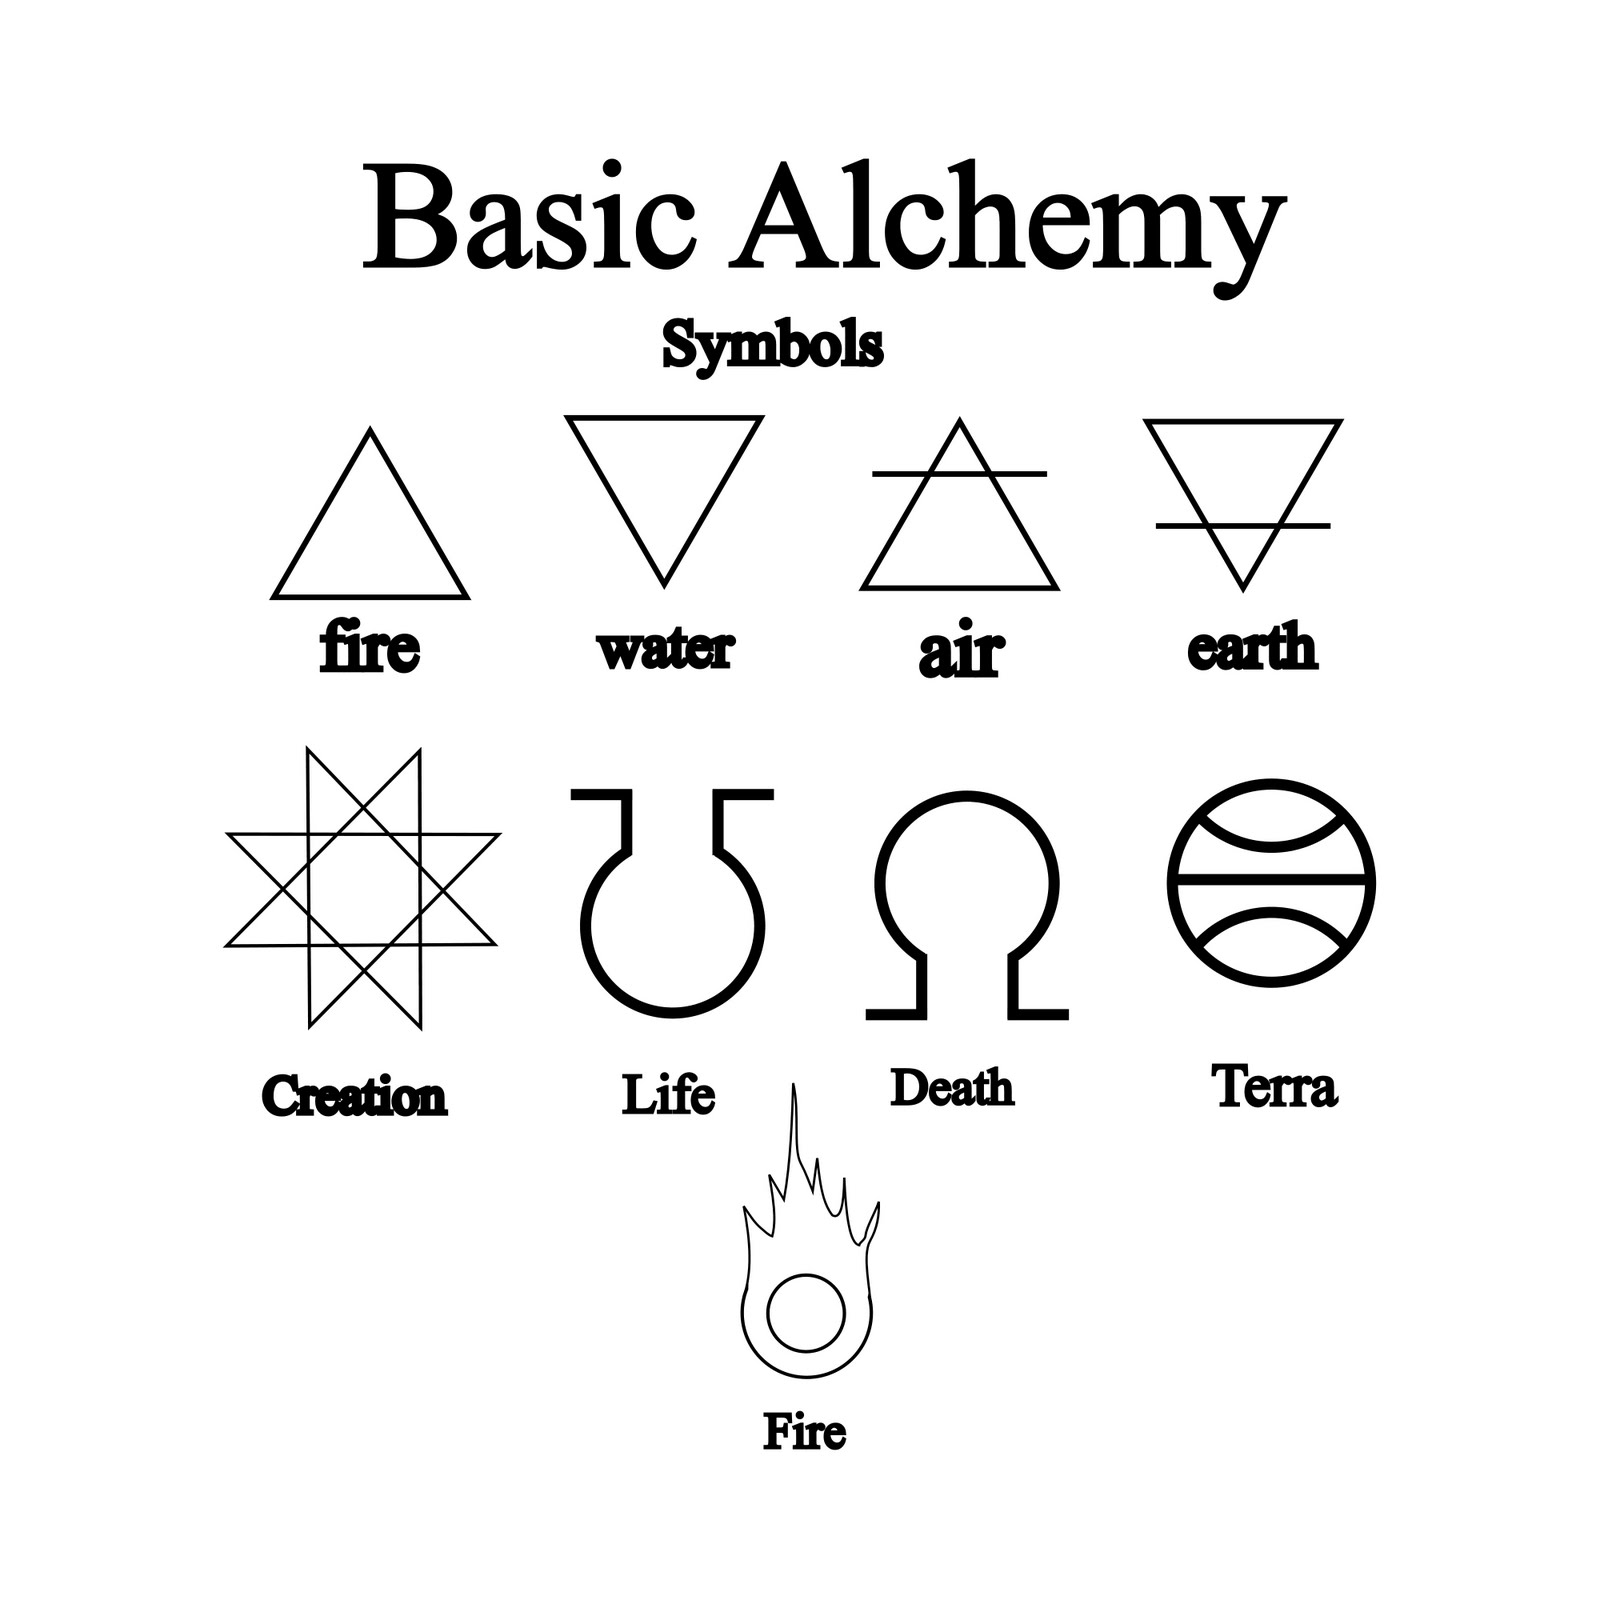 Alchemy Symbols And Meanings Fullmetal Alchemist Basic ...